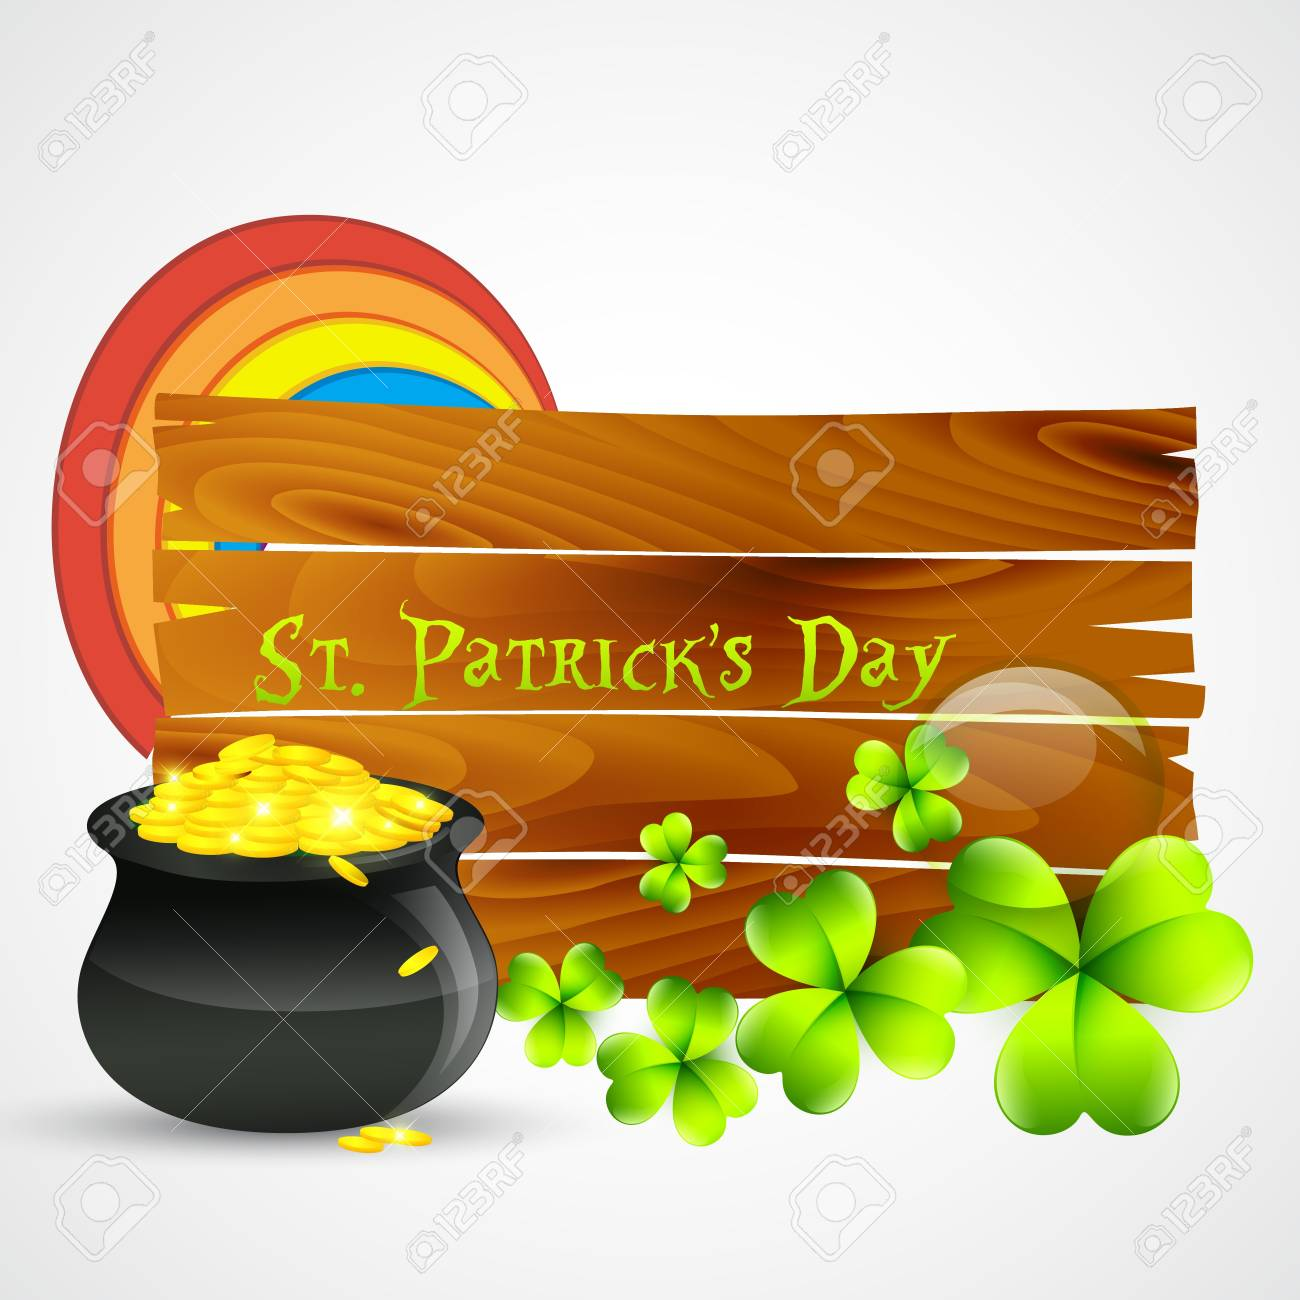 vector beautiful st patrick's day illustration Stock Vector - 17988162